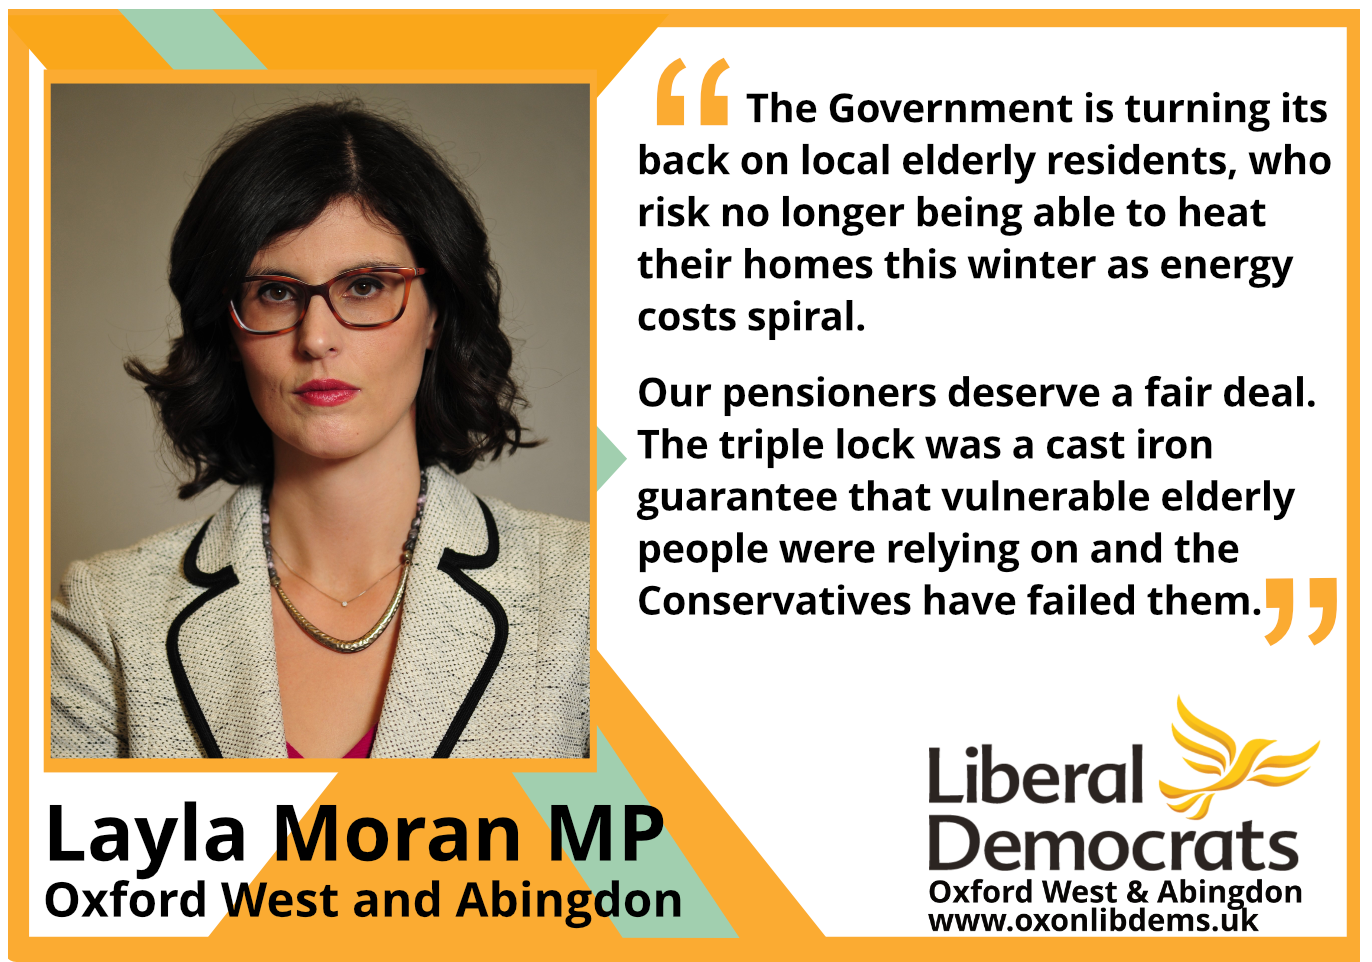 """key_The Government is turning its back on local elderly residents, who risk no longer being able to heat their homes this winter as energy costs spiral.     """"Our pensioners deserve a fair deal. The triple lock was a cast iron guarantee that vulnerable elderly people were relying on and the Conservatives have failed them."""